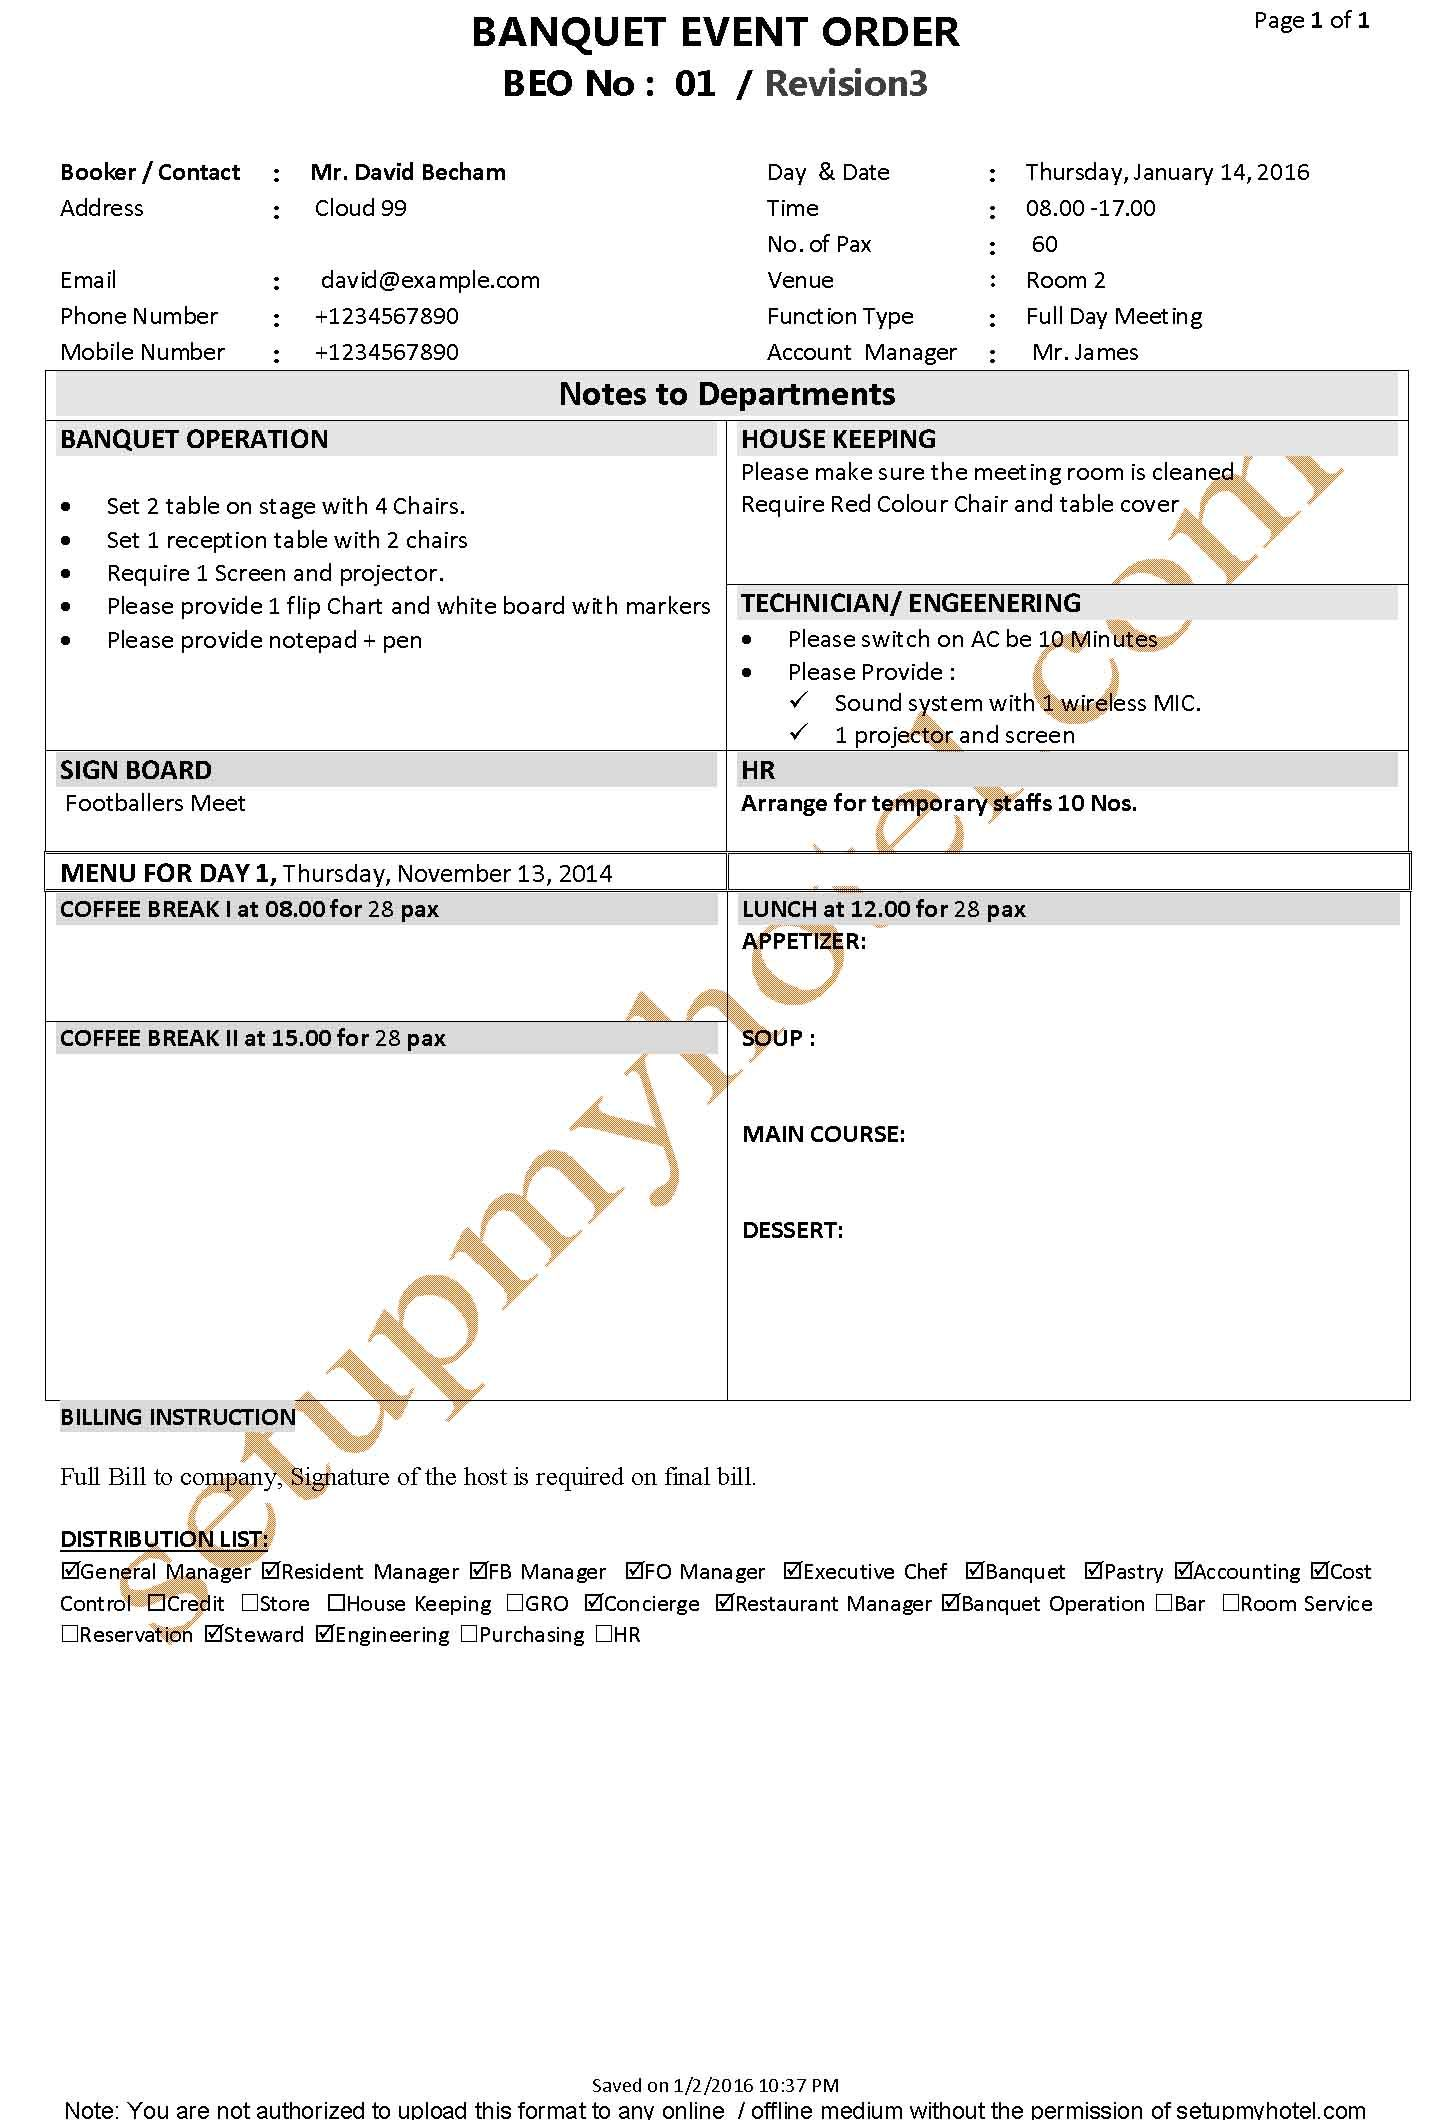 Banquet Function Sheet Event Order Beo Fp Formats Gift Certificate